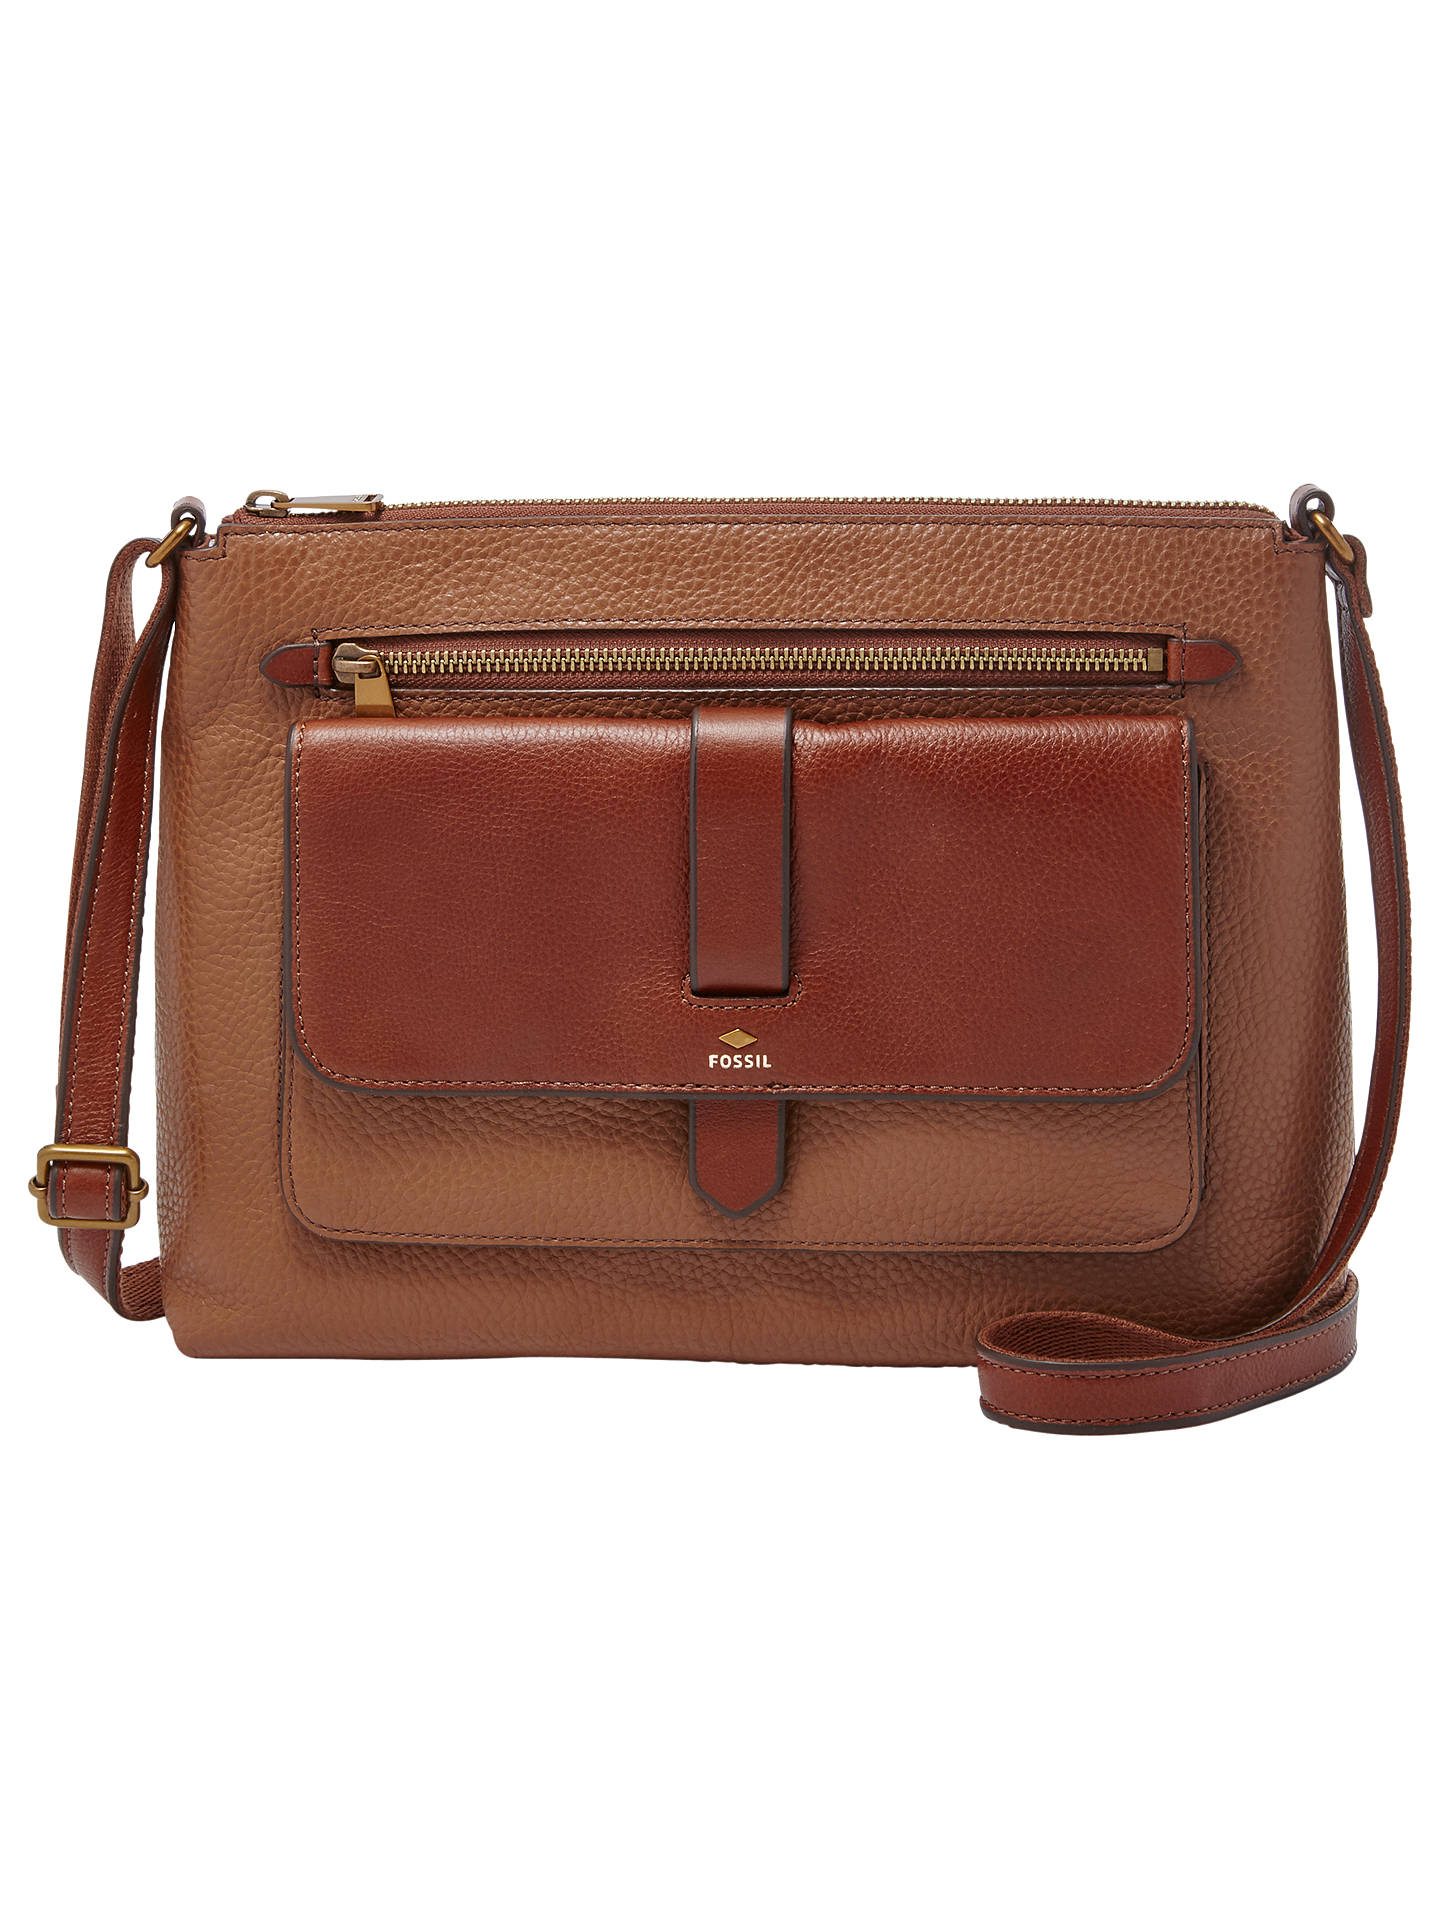 Fossil Kinley Leather Medium Cross Body Bag At John Lewis Partners Small Crossbody Brown Buyfossil Online